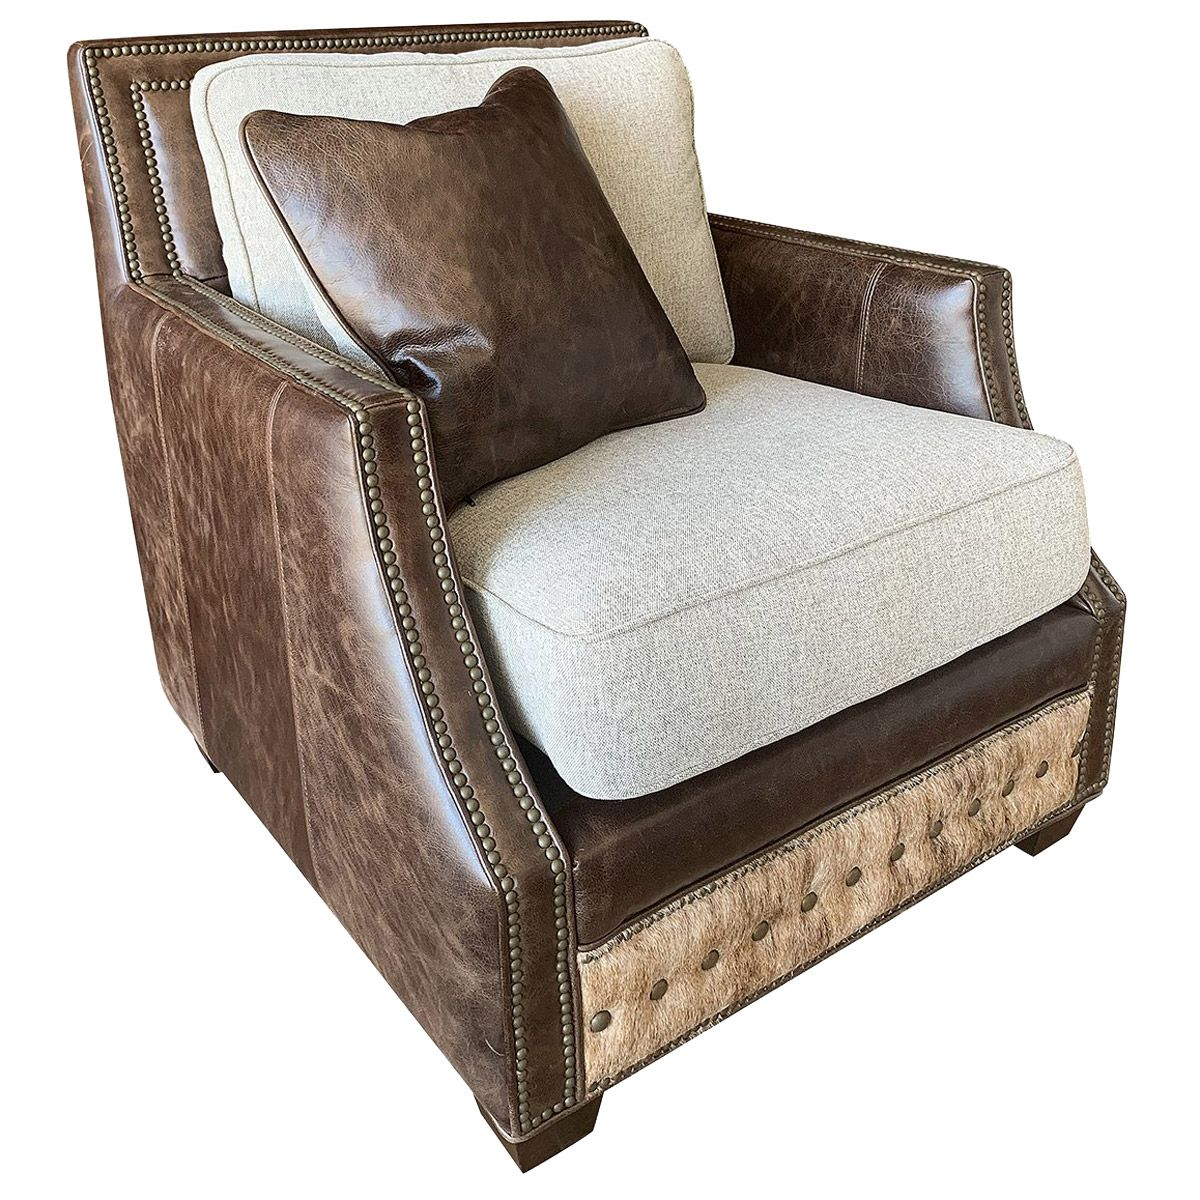 Adrian Contemporary Rustic Club Chair